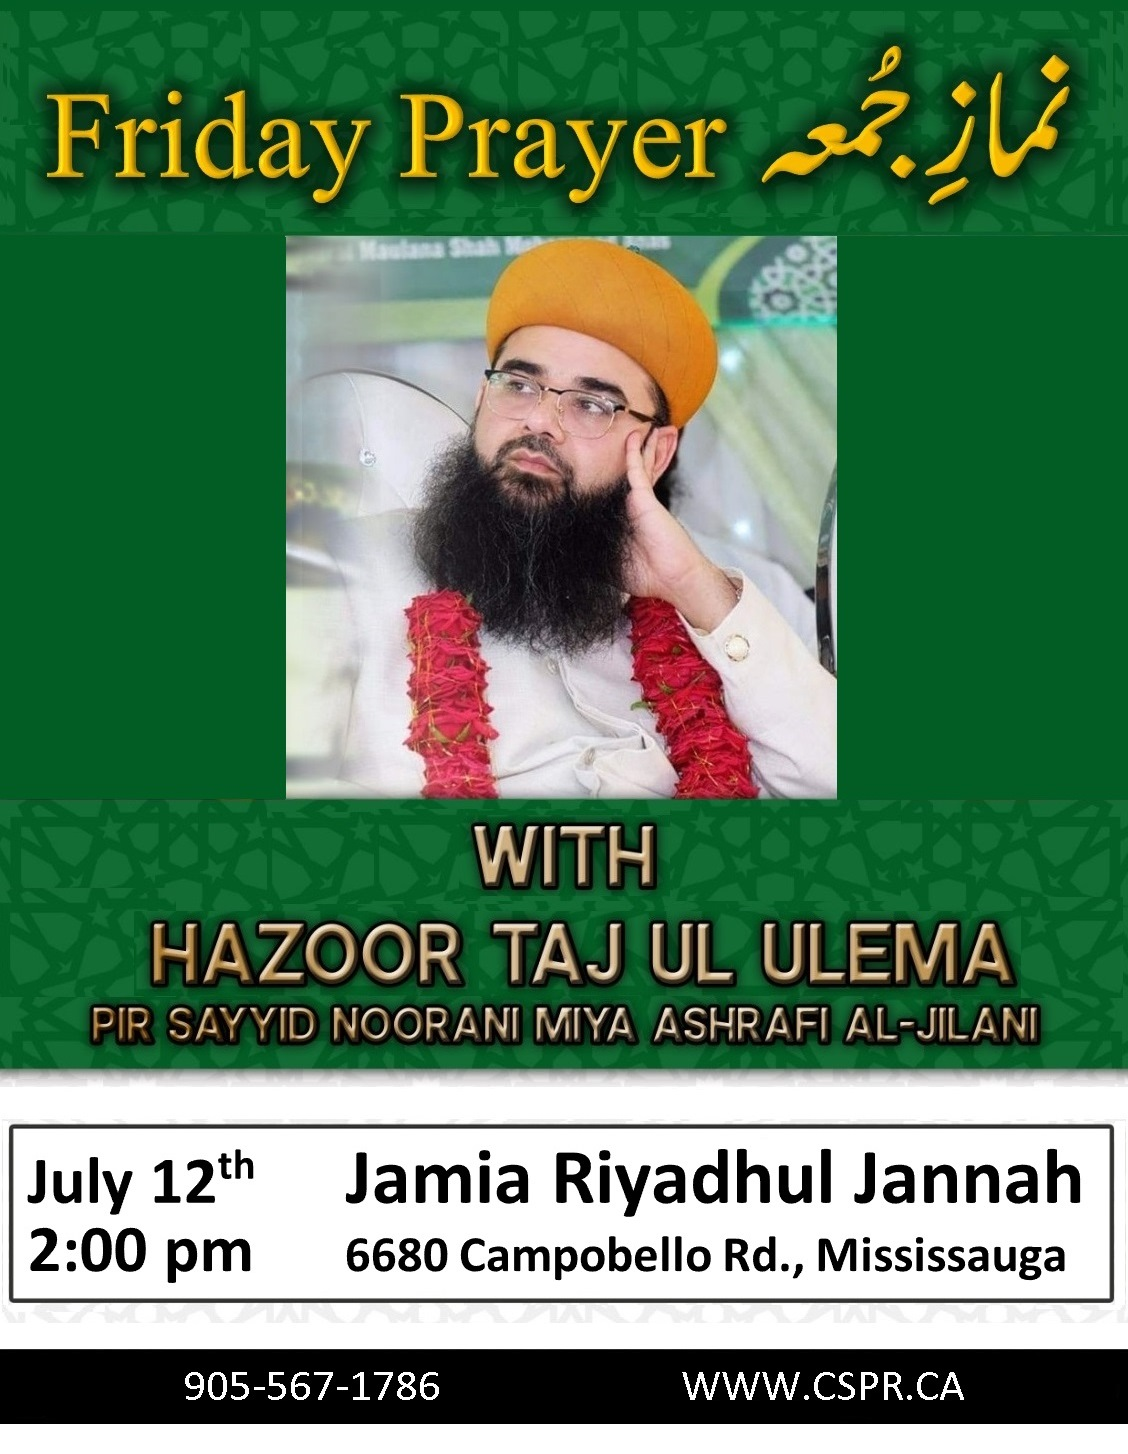 jrj-friday-prayer-flyer-copy